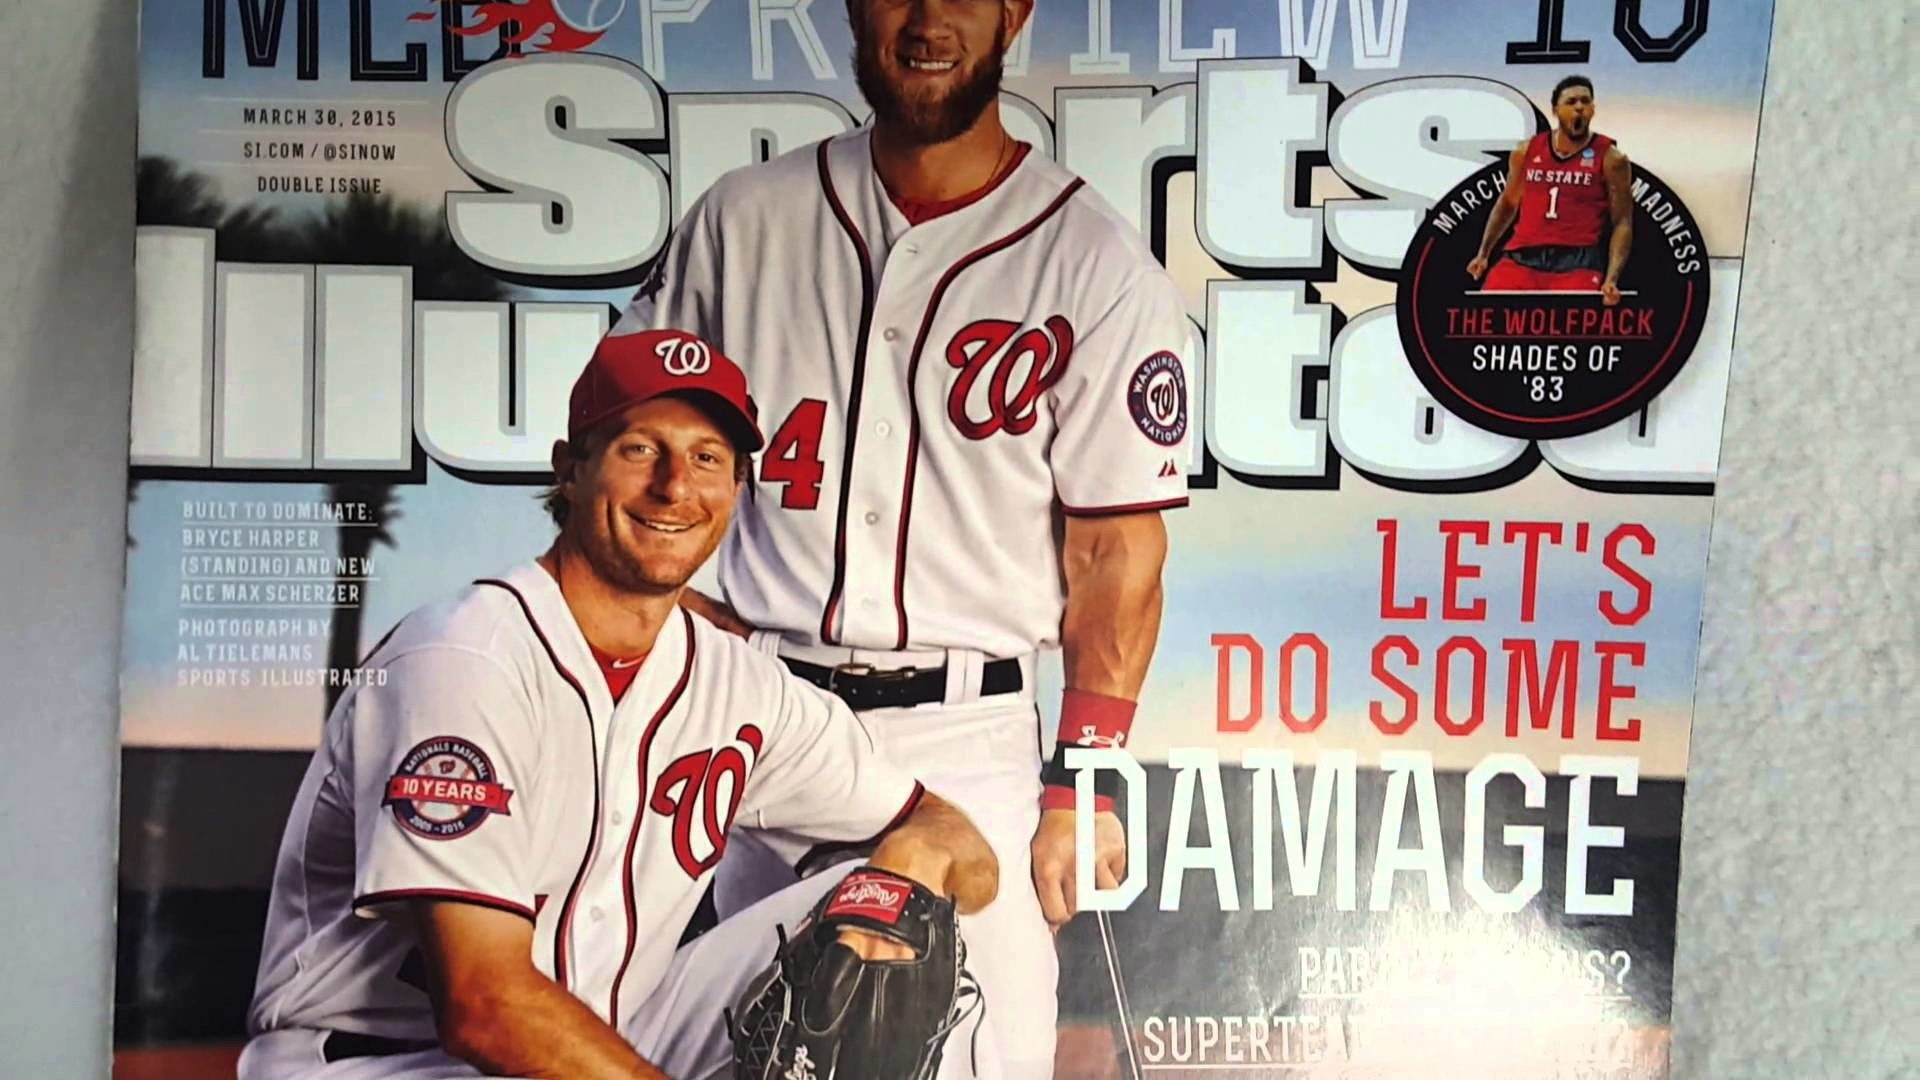 Sports Illustrated Magazine March 30 2015 Bryce Harper & Max Scherzer on  cover